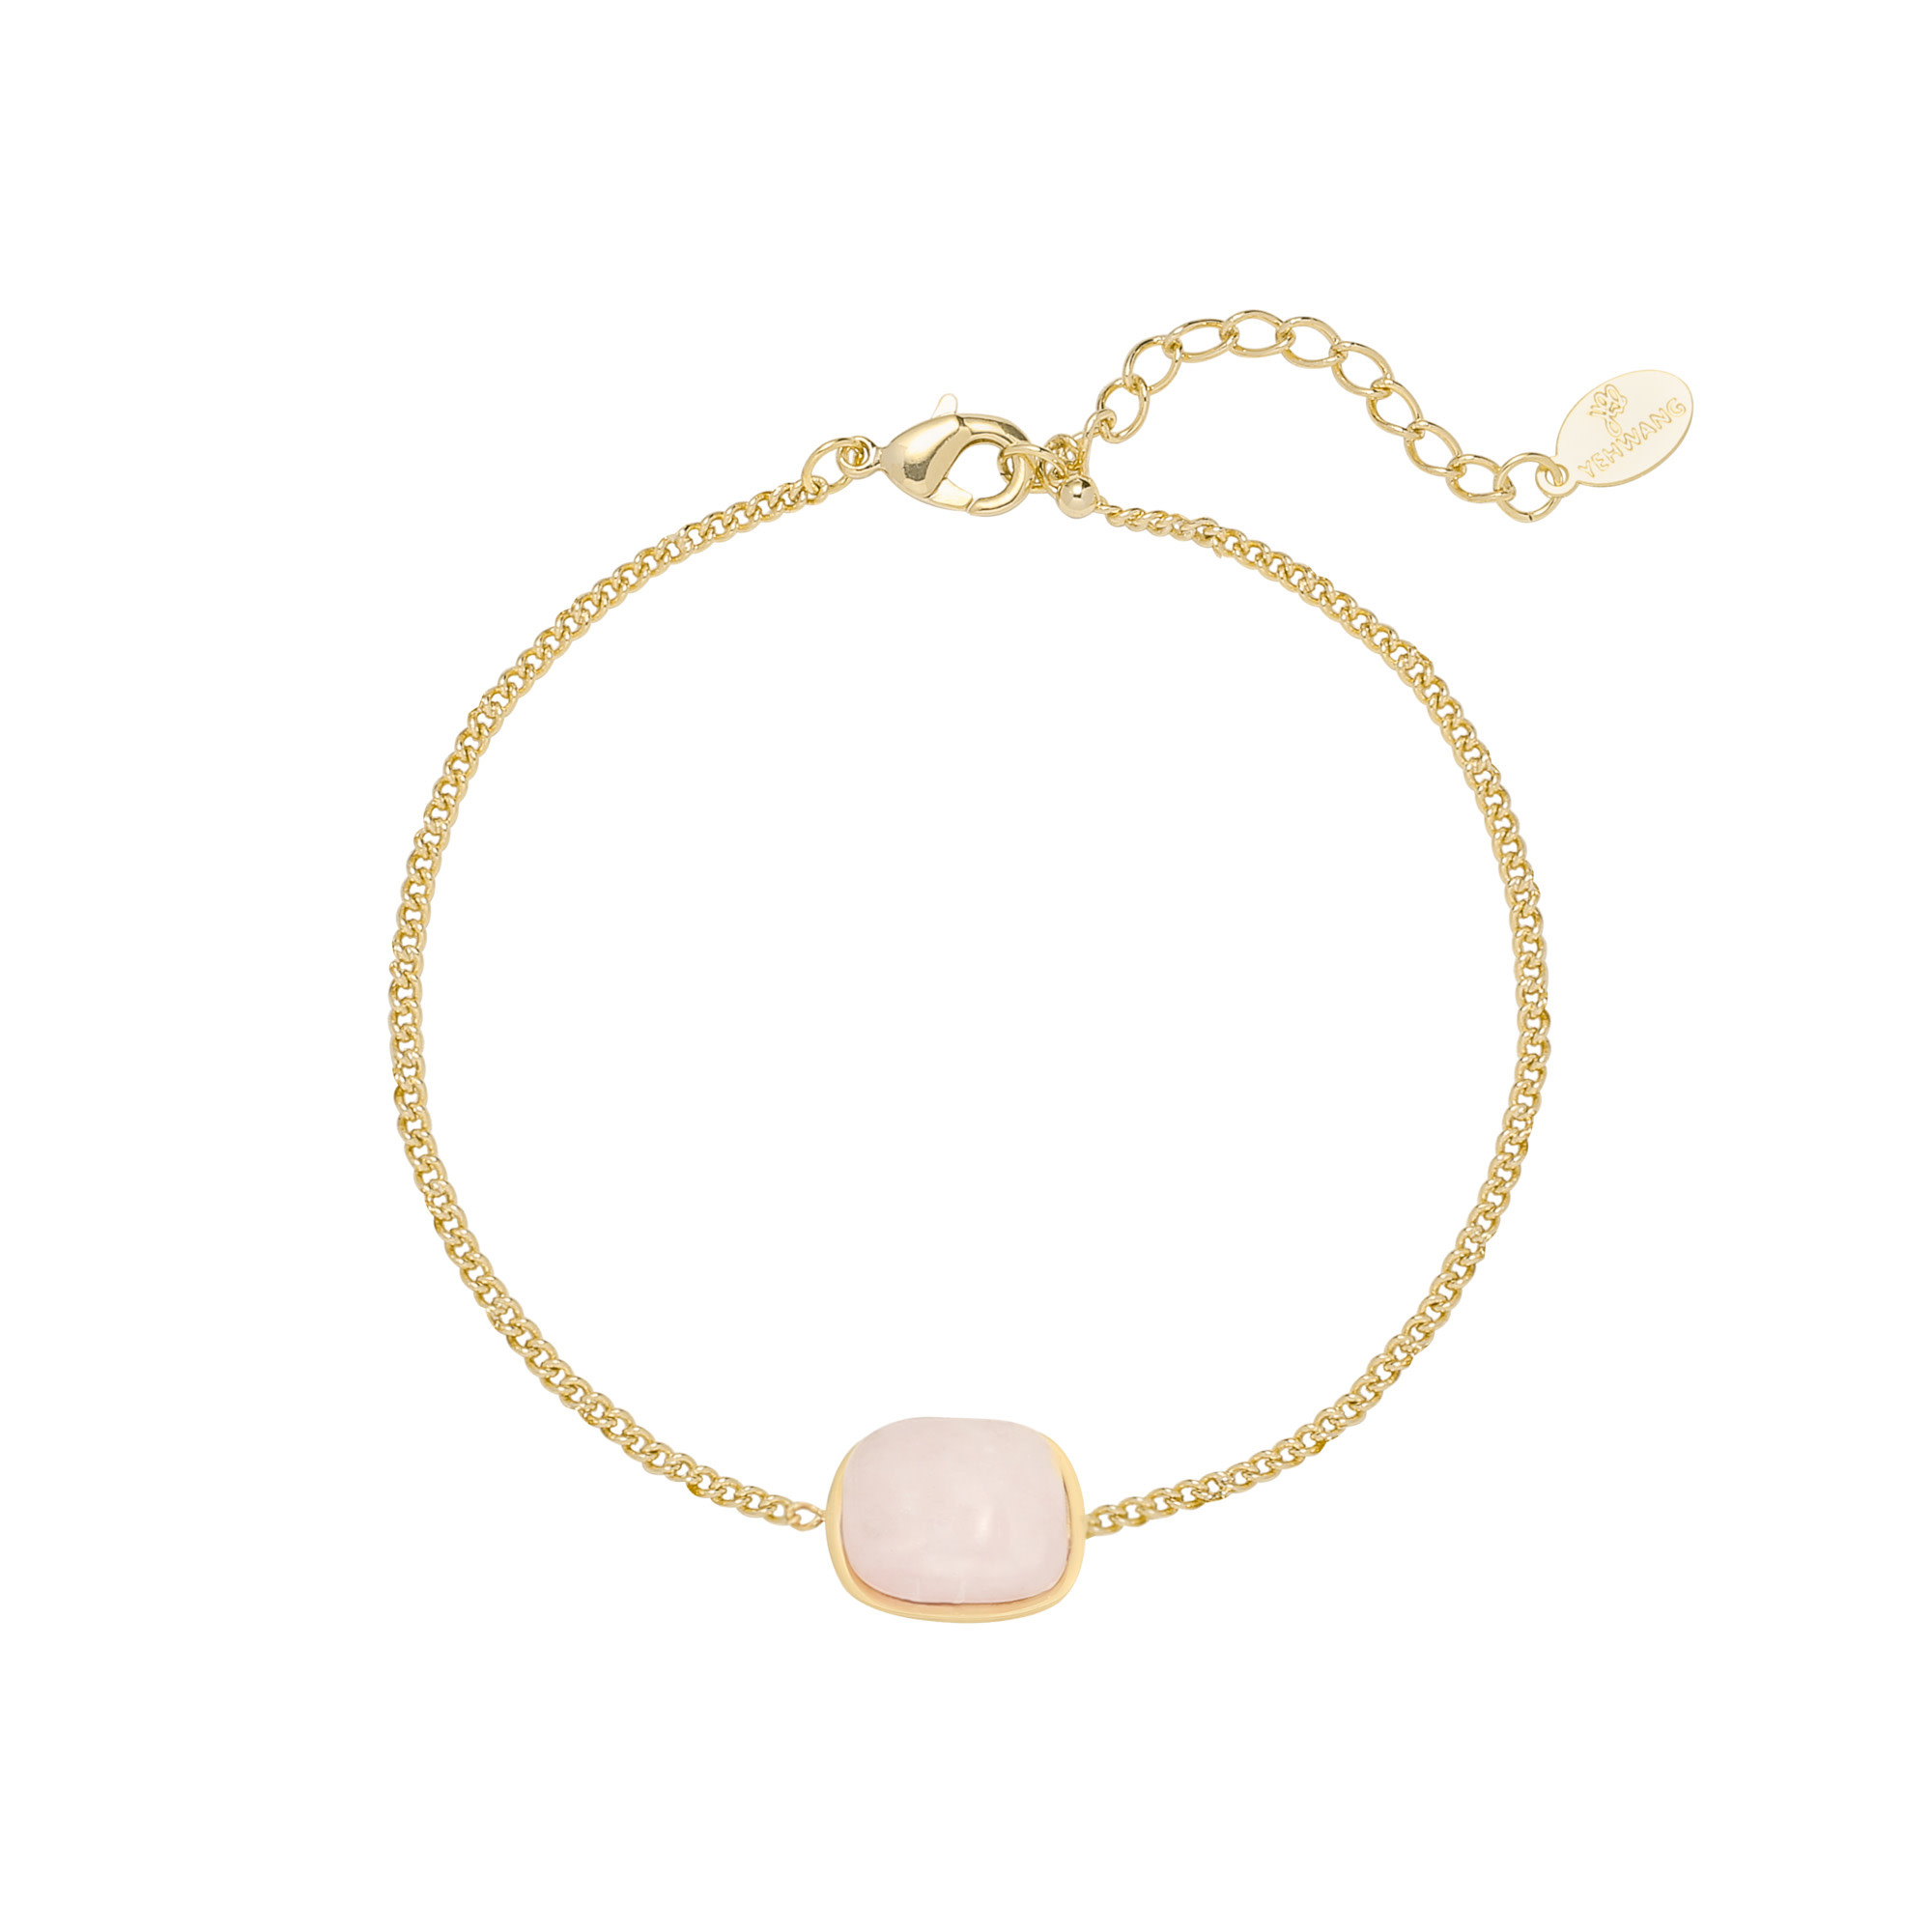 With love Bracelet in nature - pink